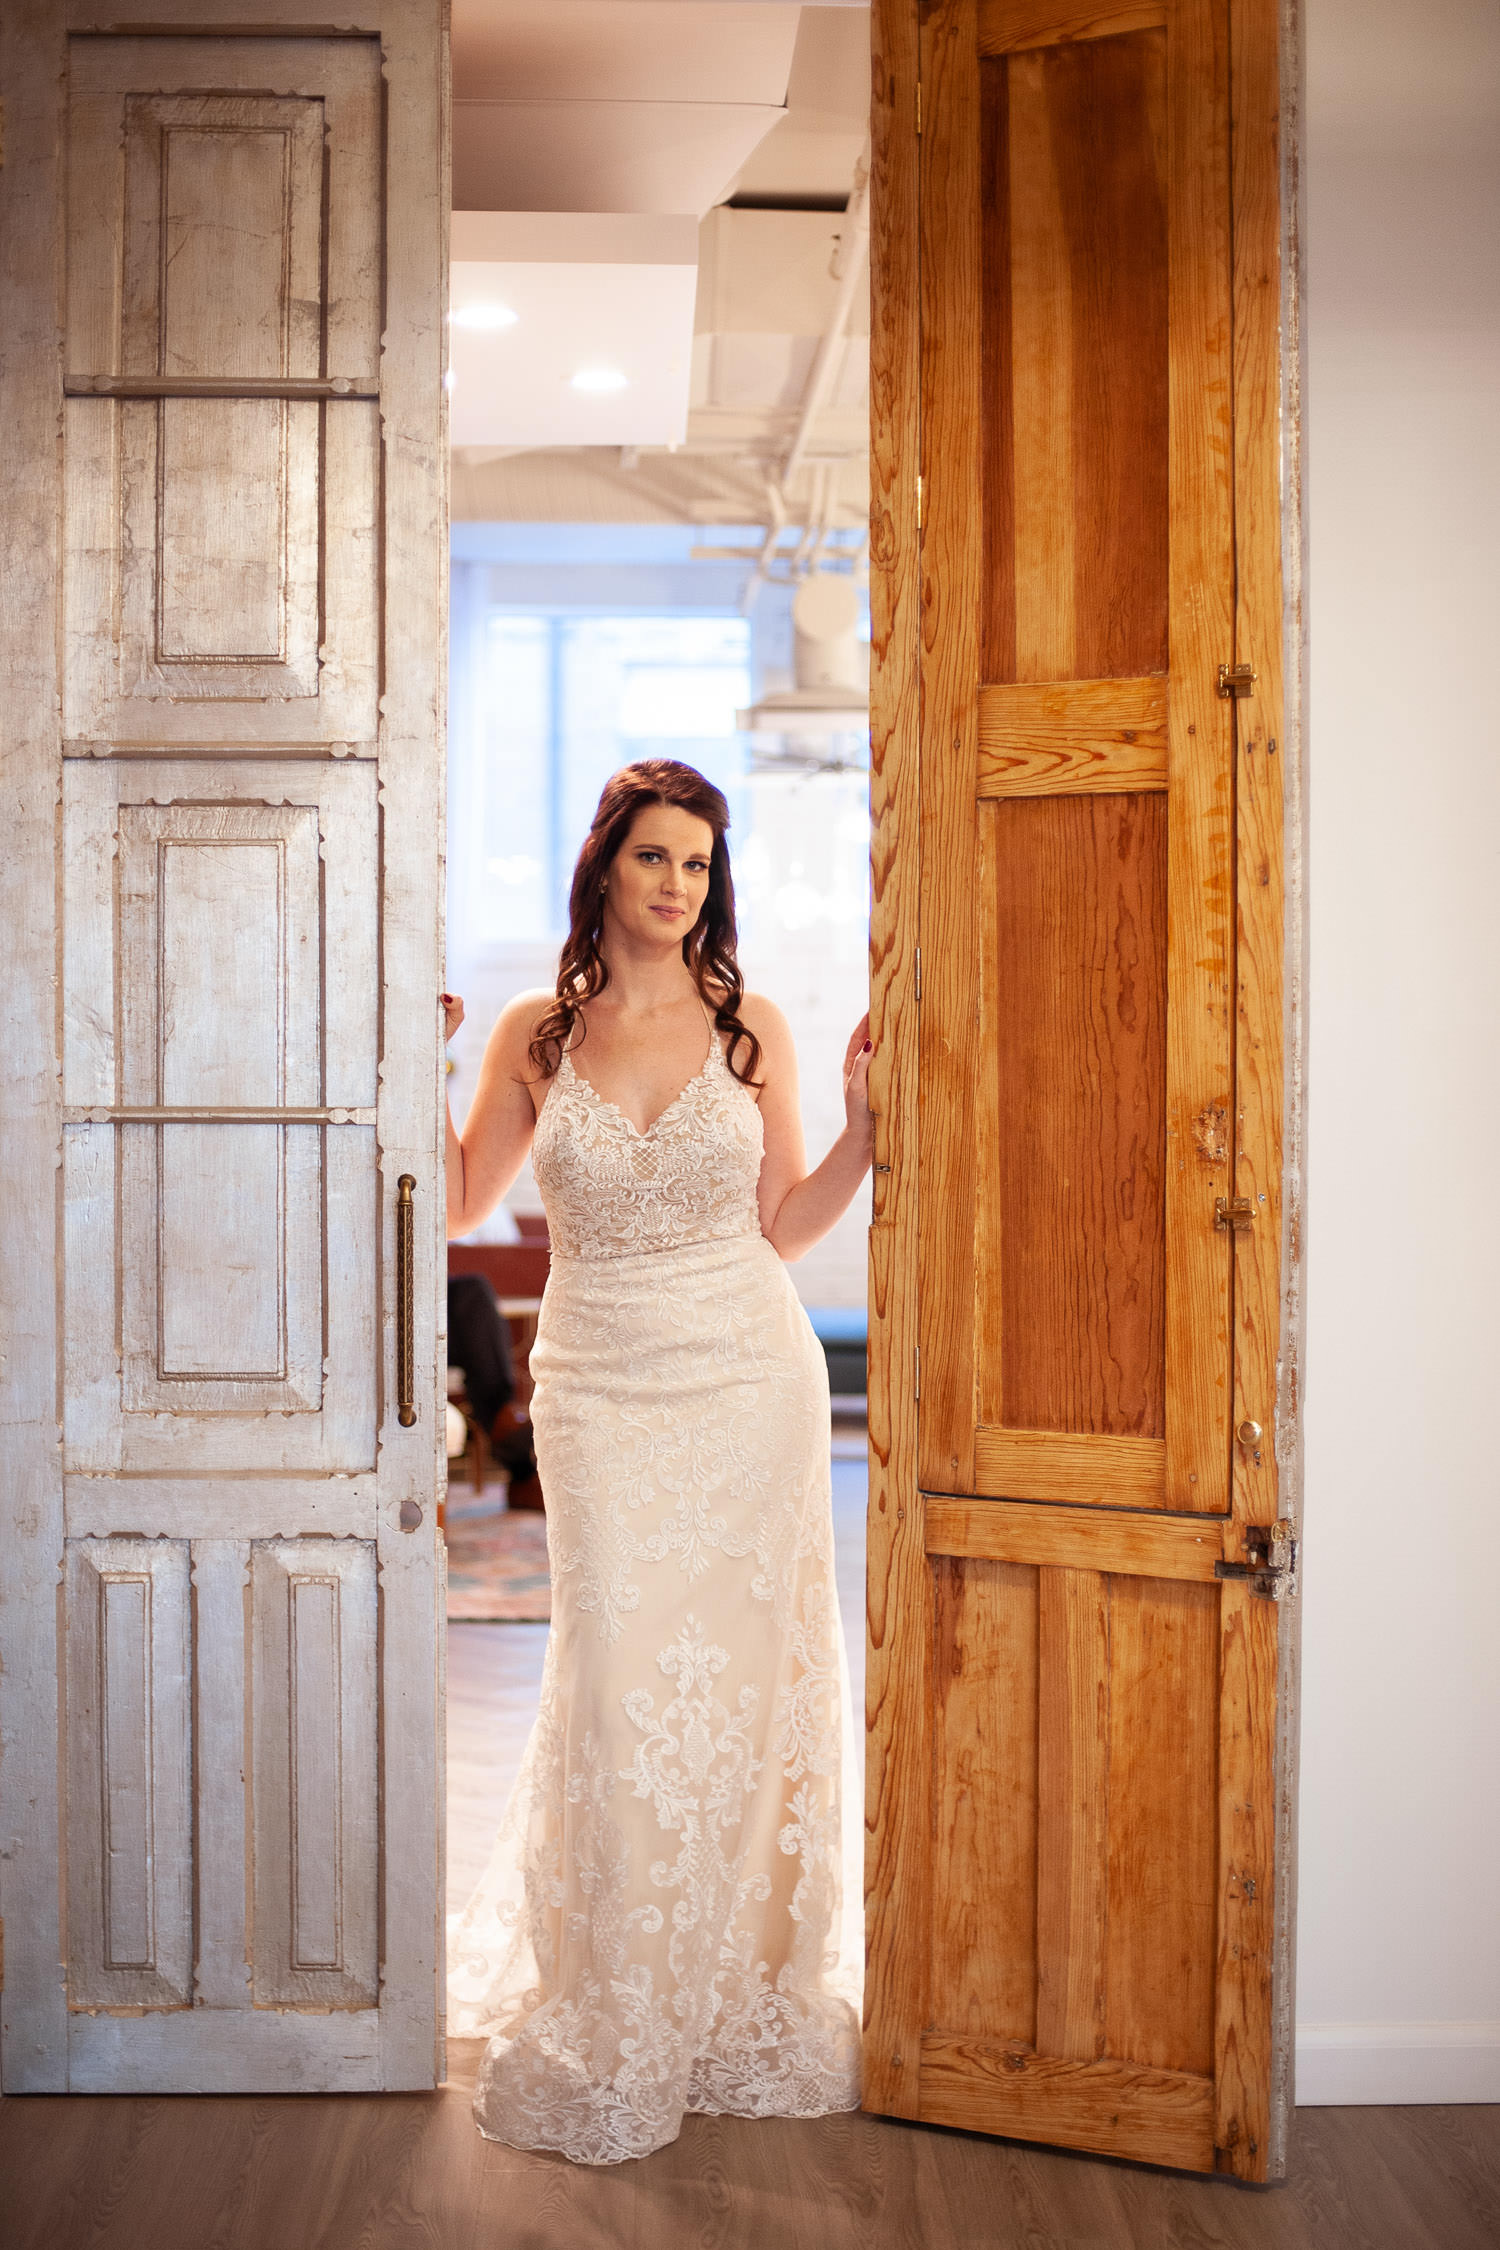 Bride inside Venue 308 captured by Tara Whittaker Photography